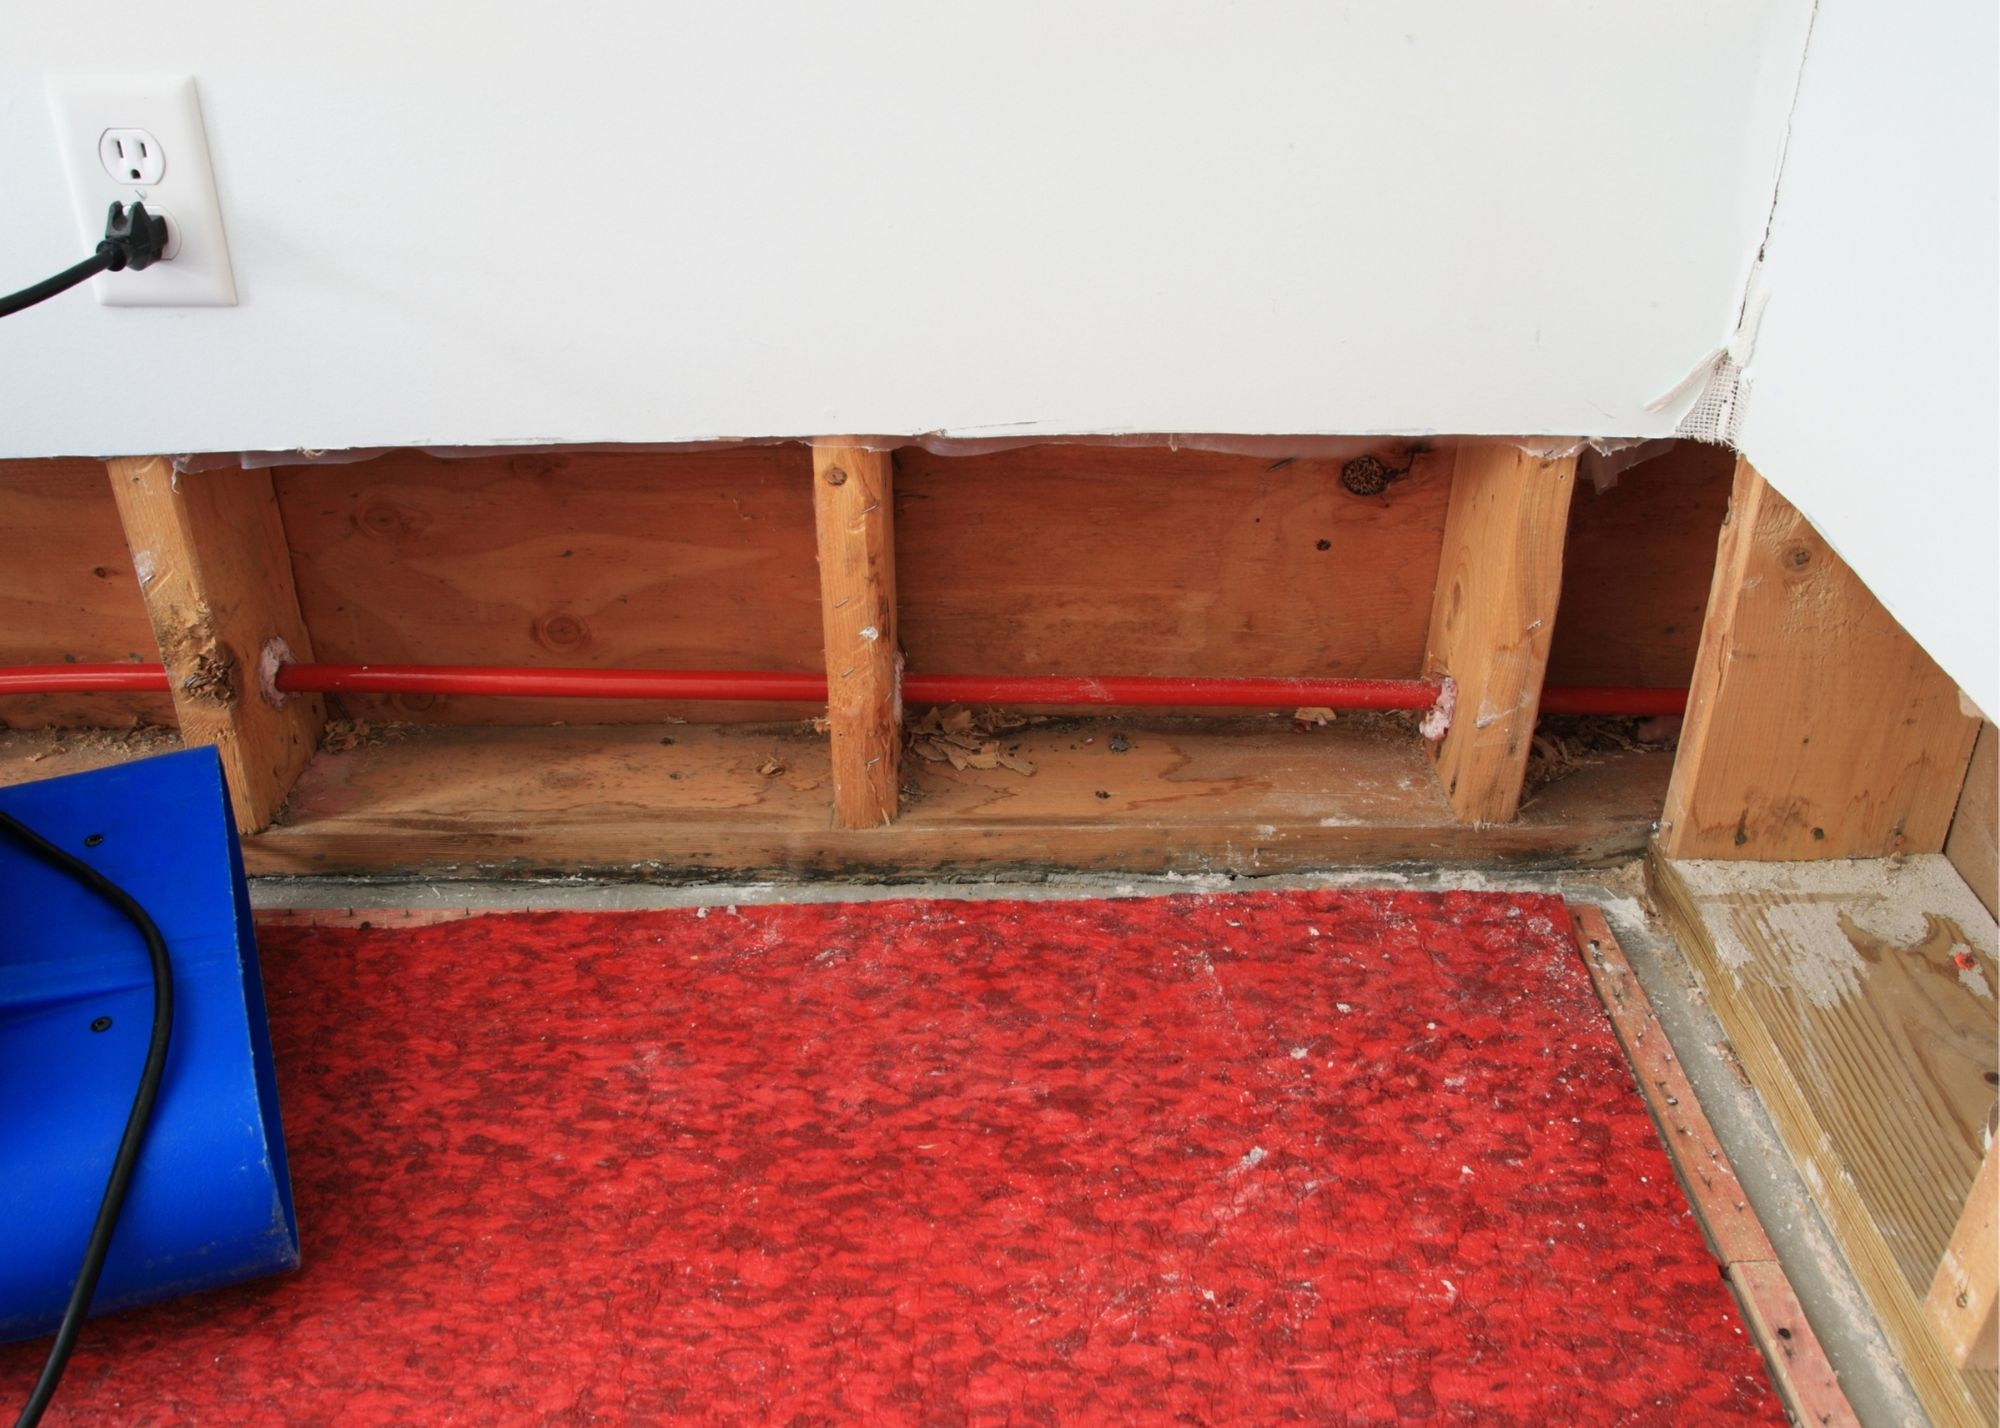 Water Damage Experts of Agoura Hills California